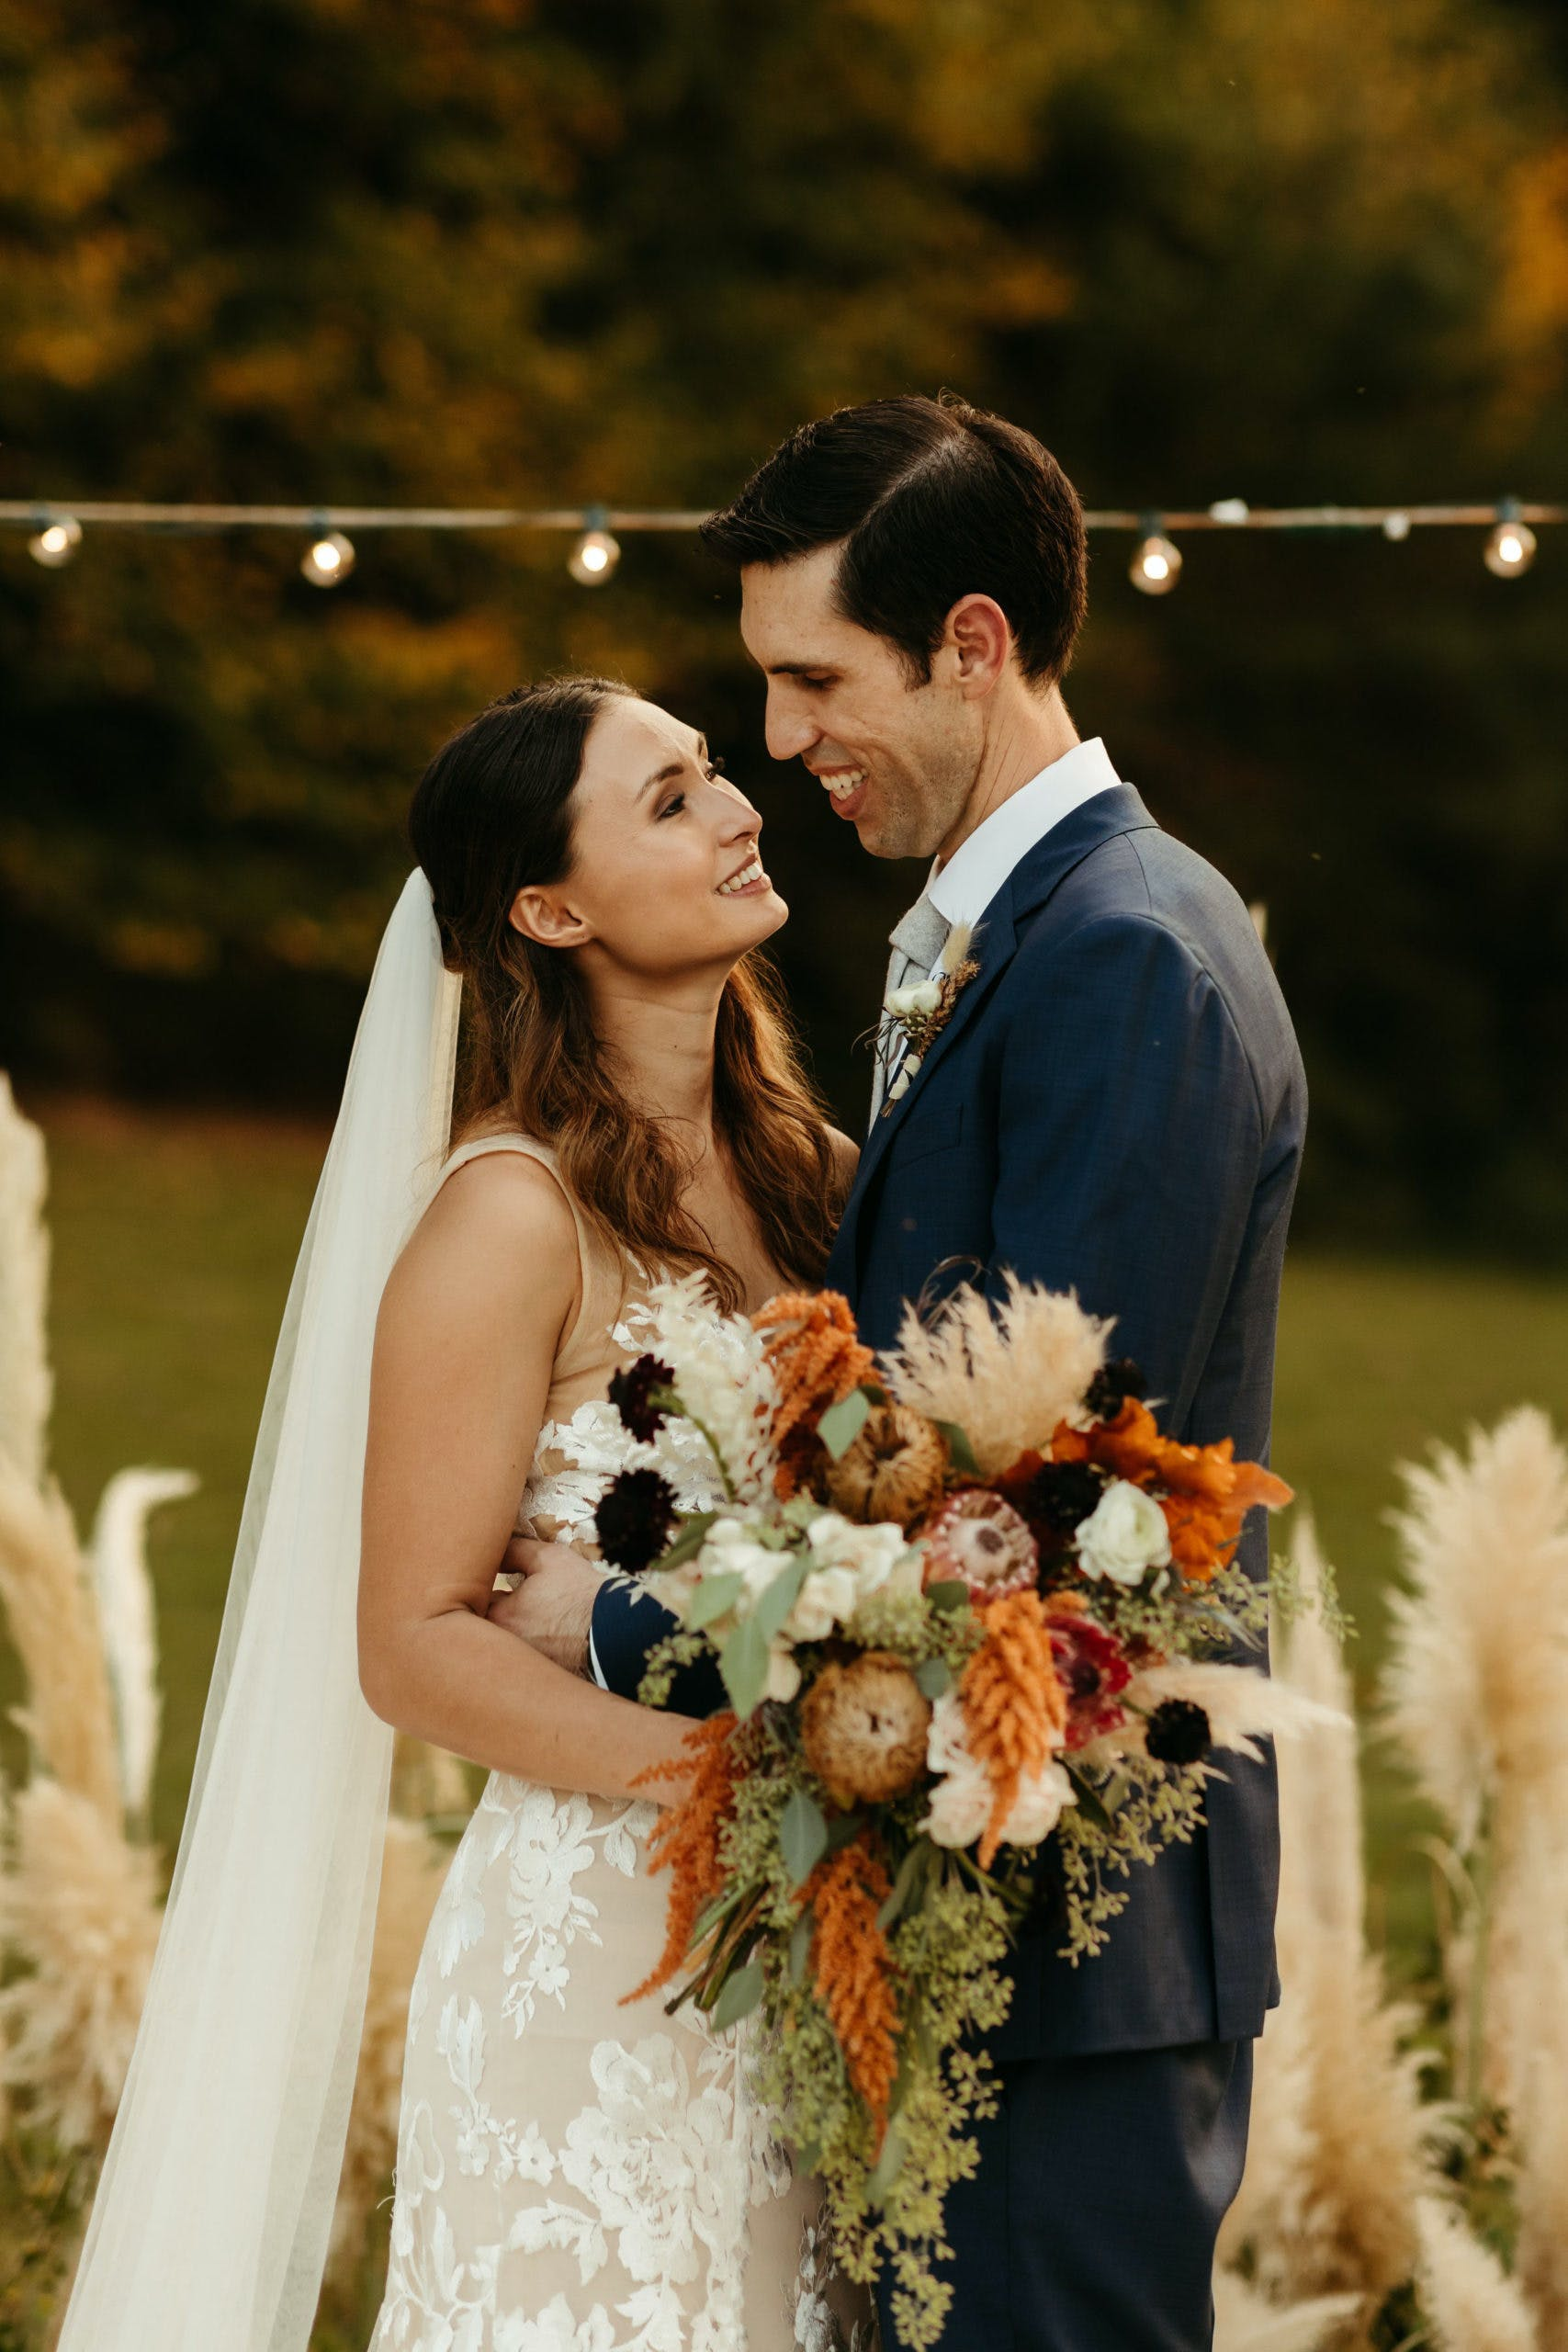 Charming Boho Rustic Chic Wedding at Under Canvas Great Smokey Mountains in Tennessee